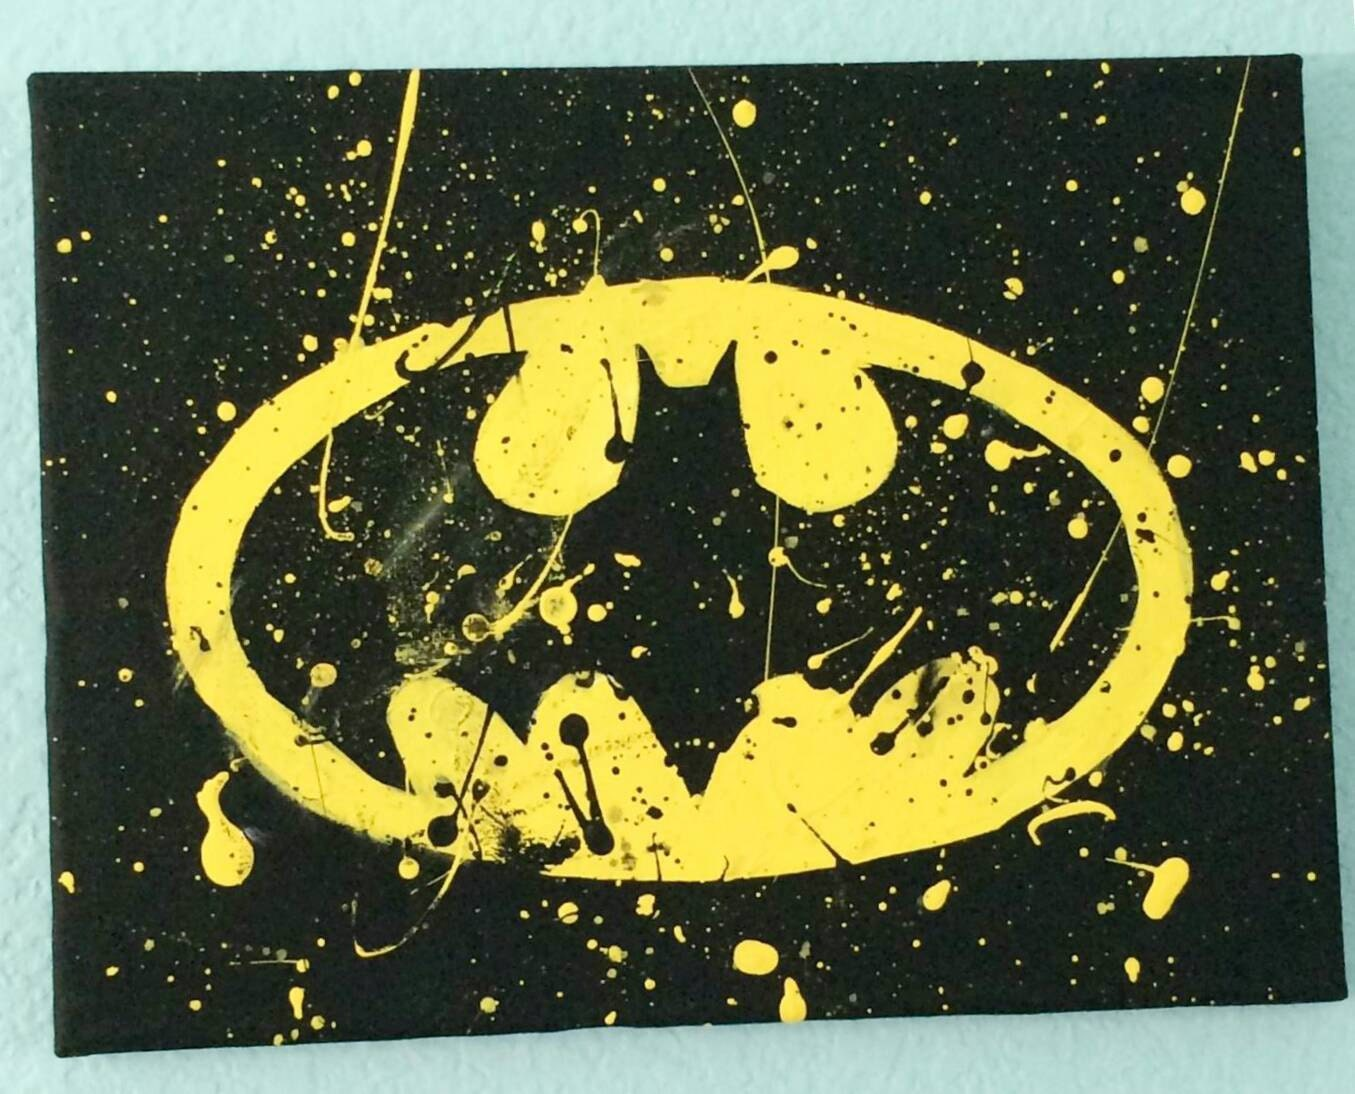 Batman canvas painting yellow black batman bat paint for Paint a dark picture